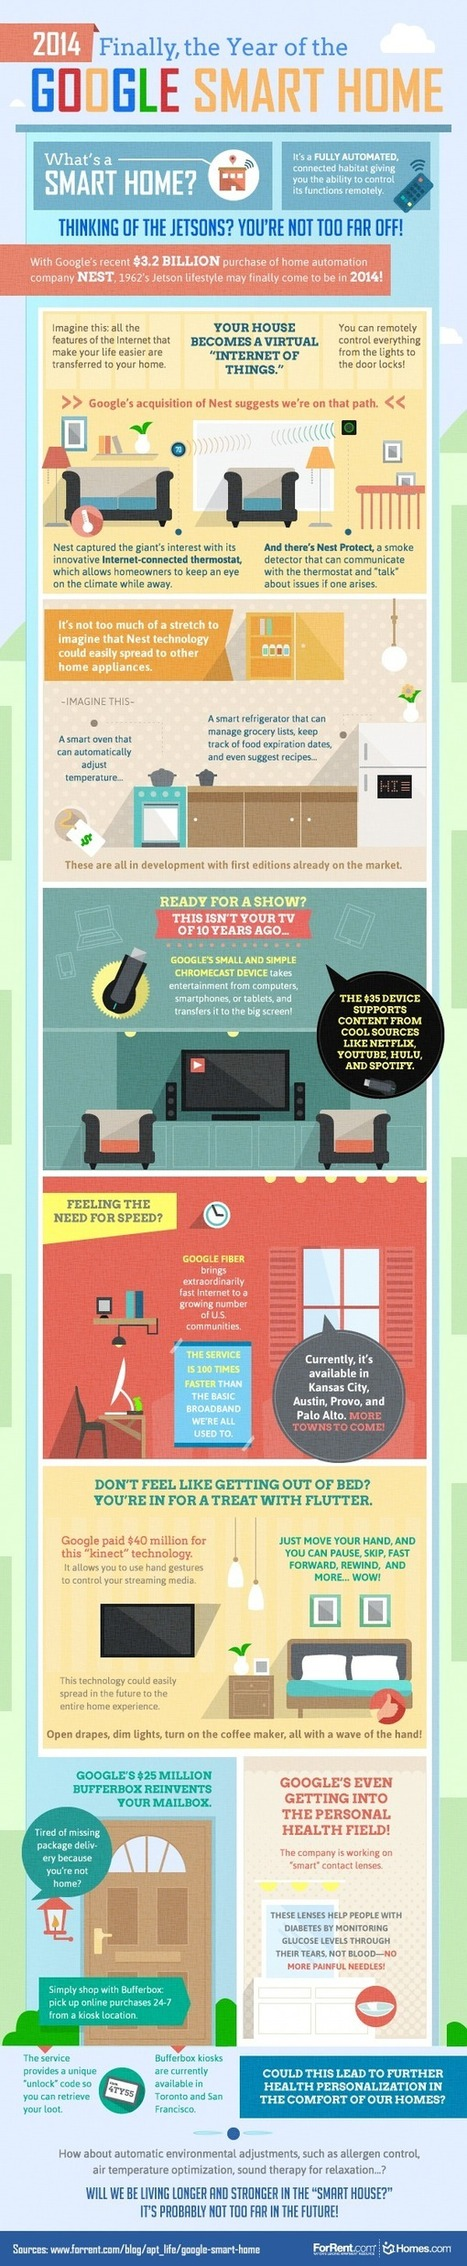 2014: The Year of the Google Smart Home #Infographic | Mobile Marketing | Scoop.it